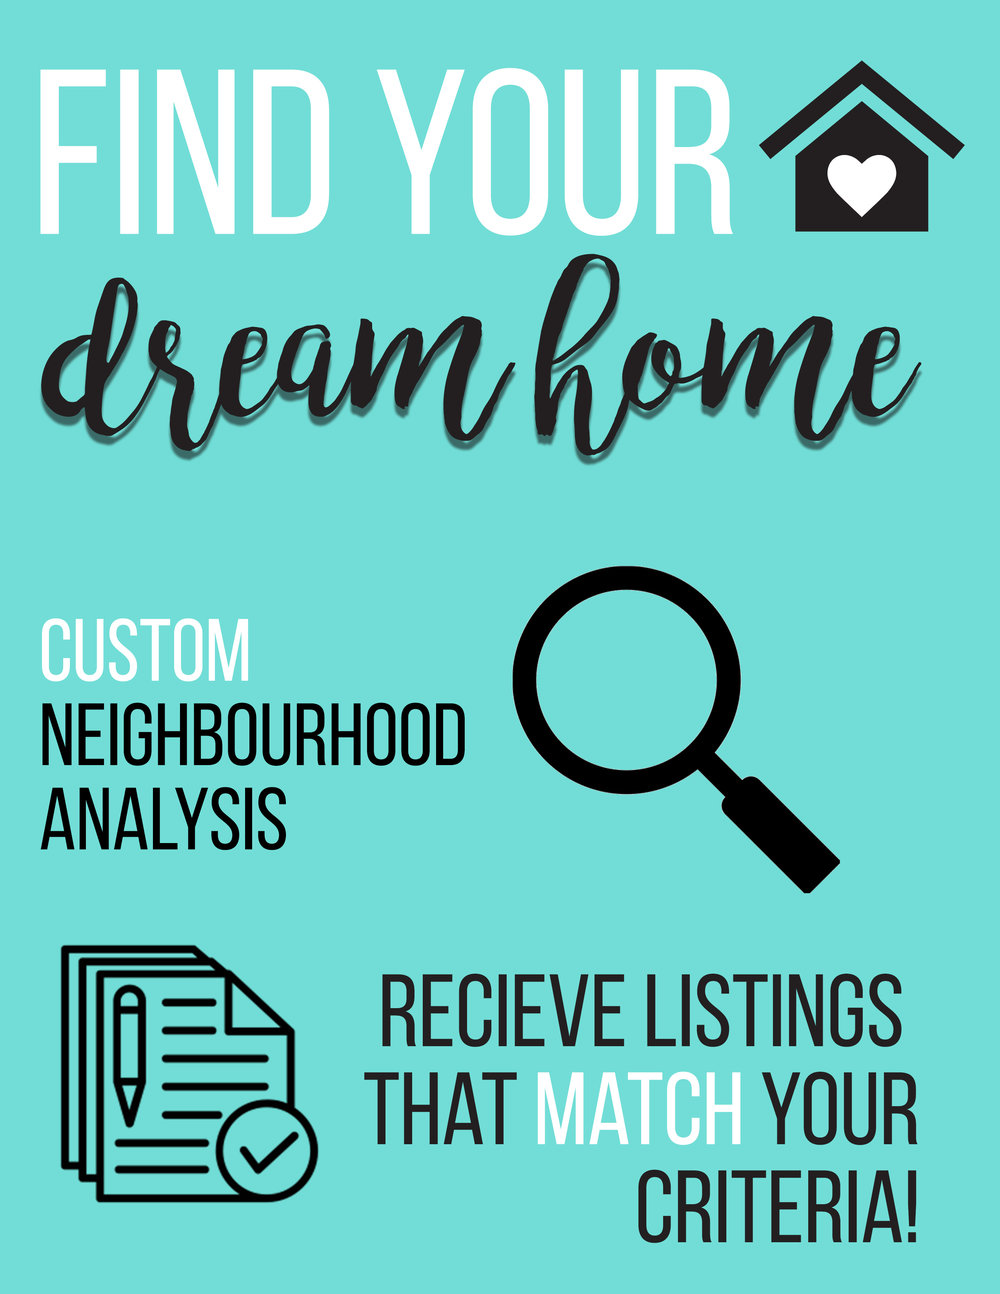 Find Your Dream Home Graphic Website.jpg